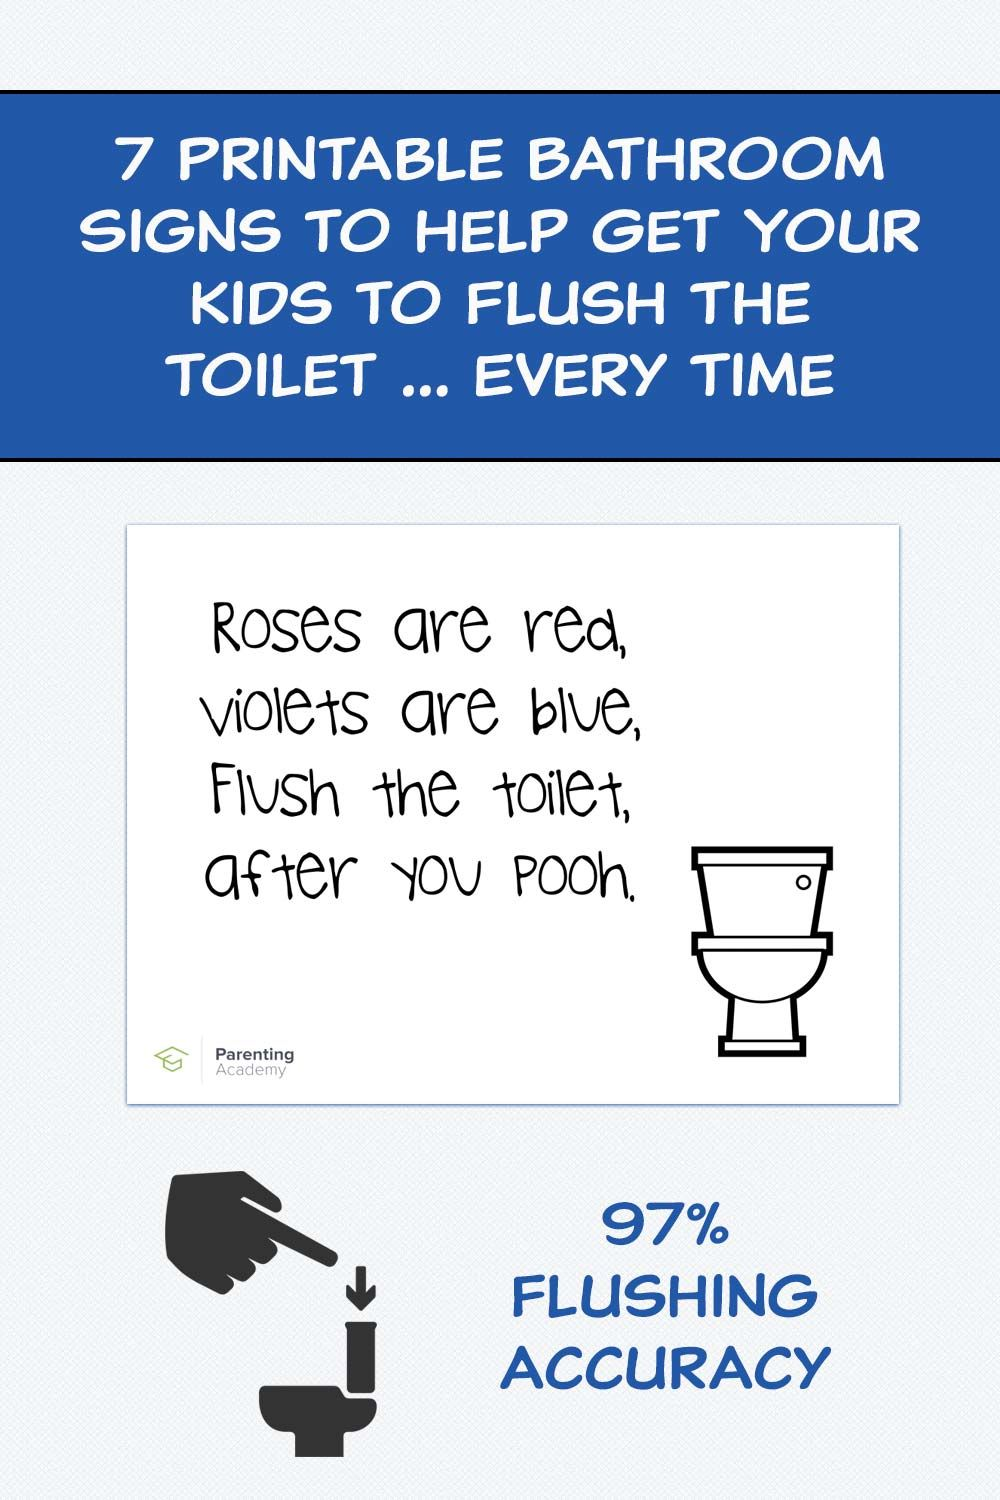 7 Printable Bathroom Signs To Help Get Your Kids To Flush